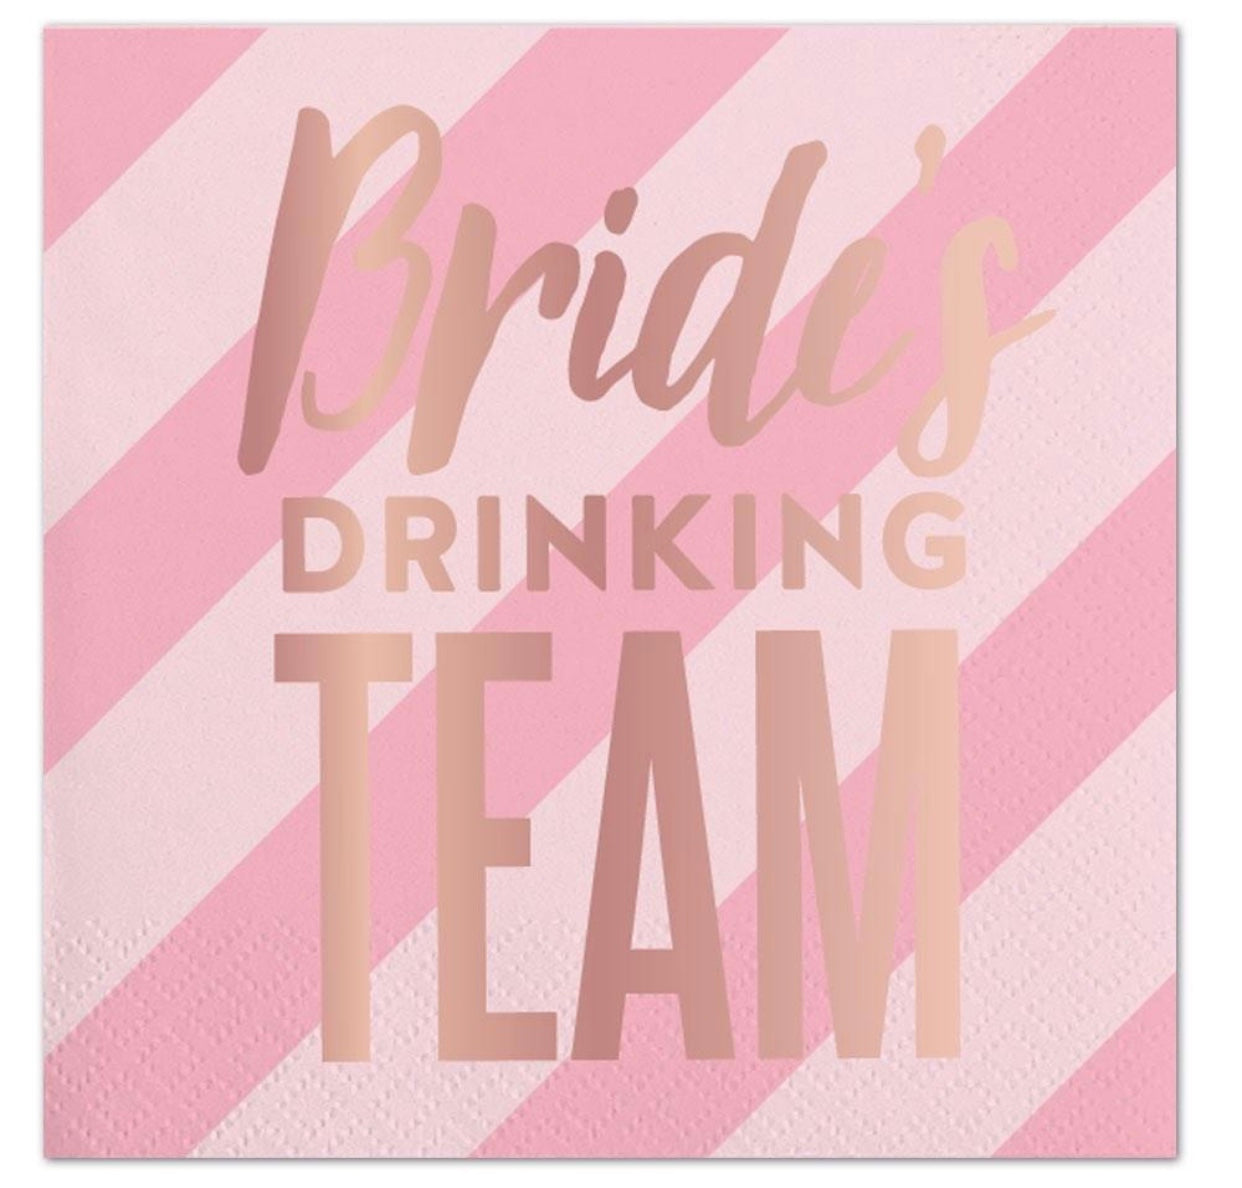 Bride's drinking team bachelorette cocktail napkins